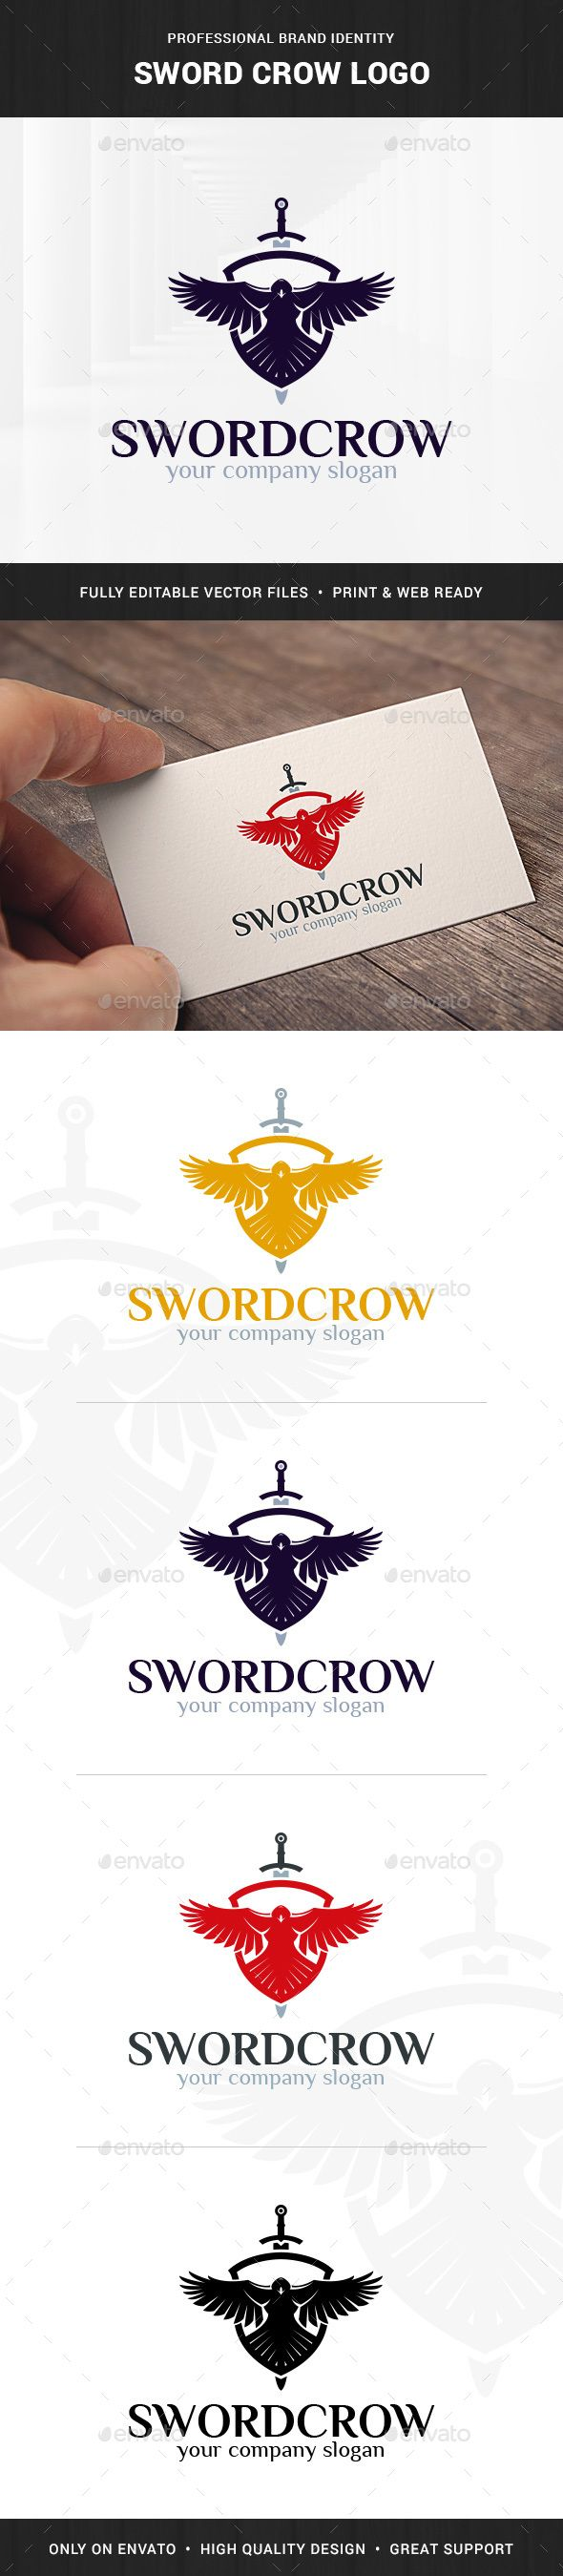 Sword Crow Logo Template - Animals Logo Templates Download here : http://graphicriver.net/item/sword-crow-logo-template/15933238?s_rank=52&ref=Al-fatih